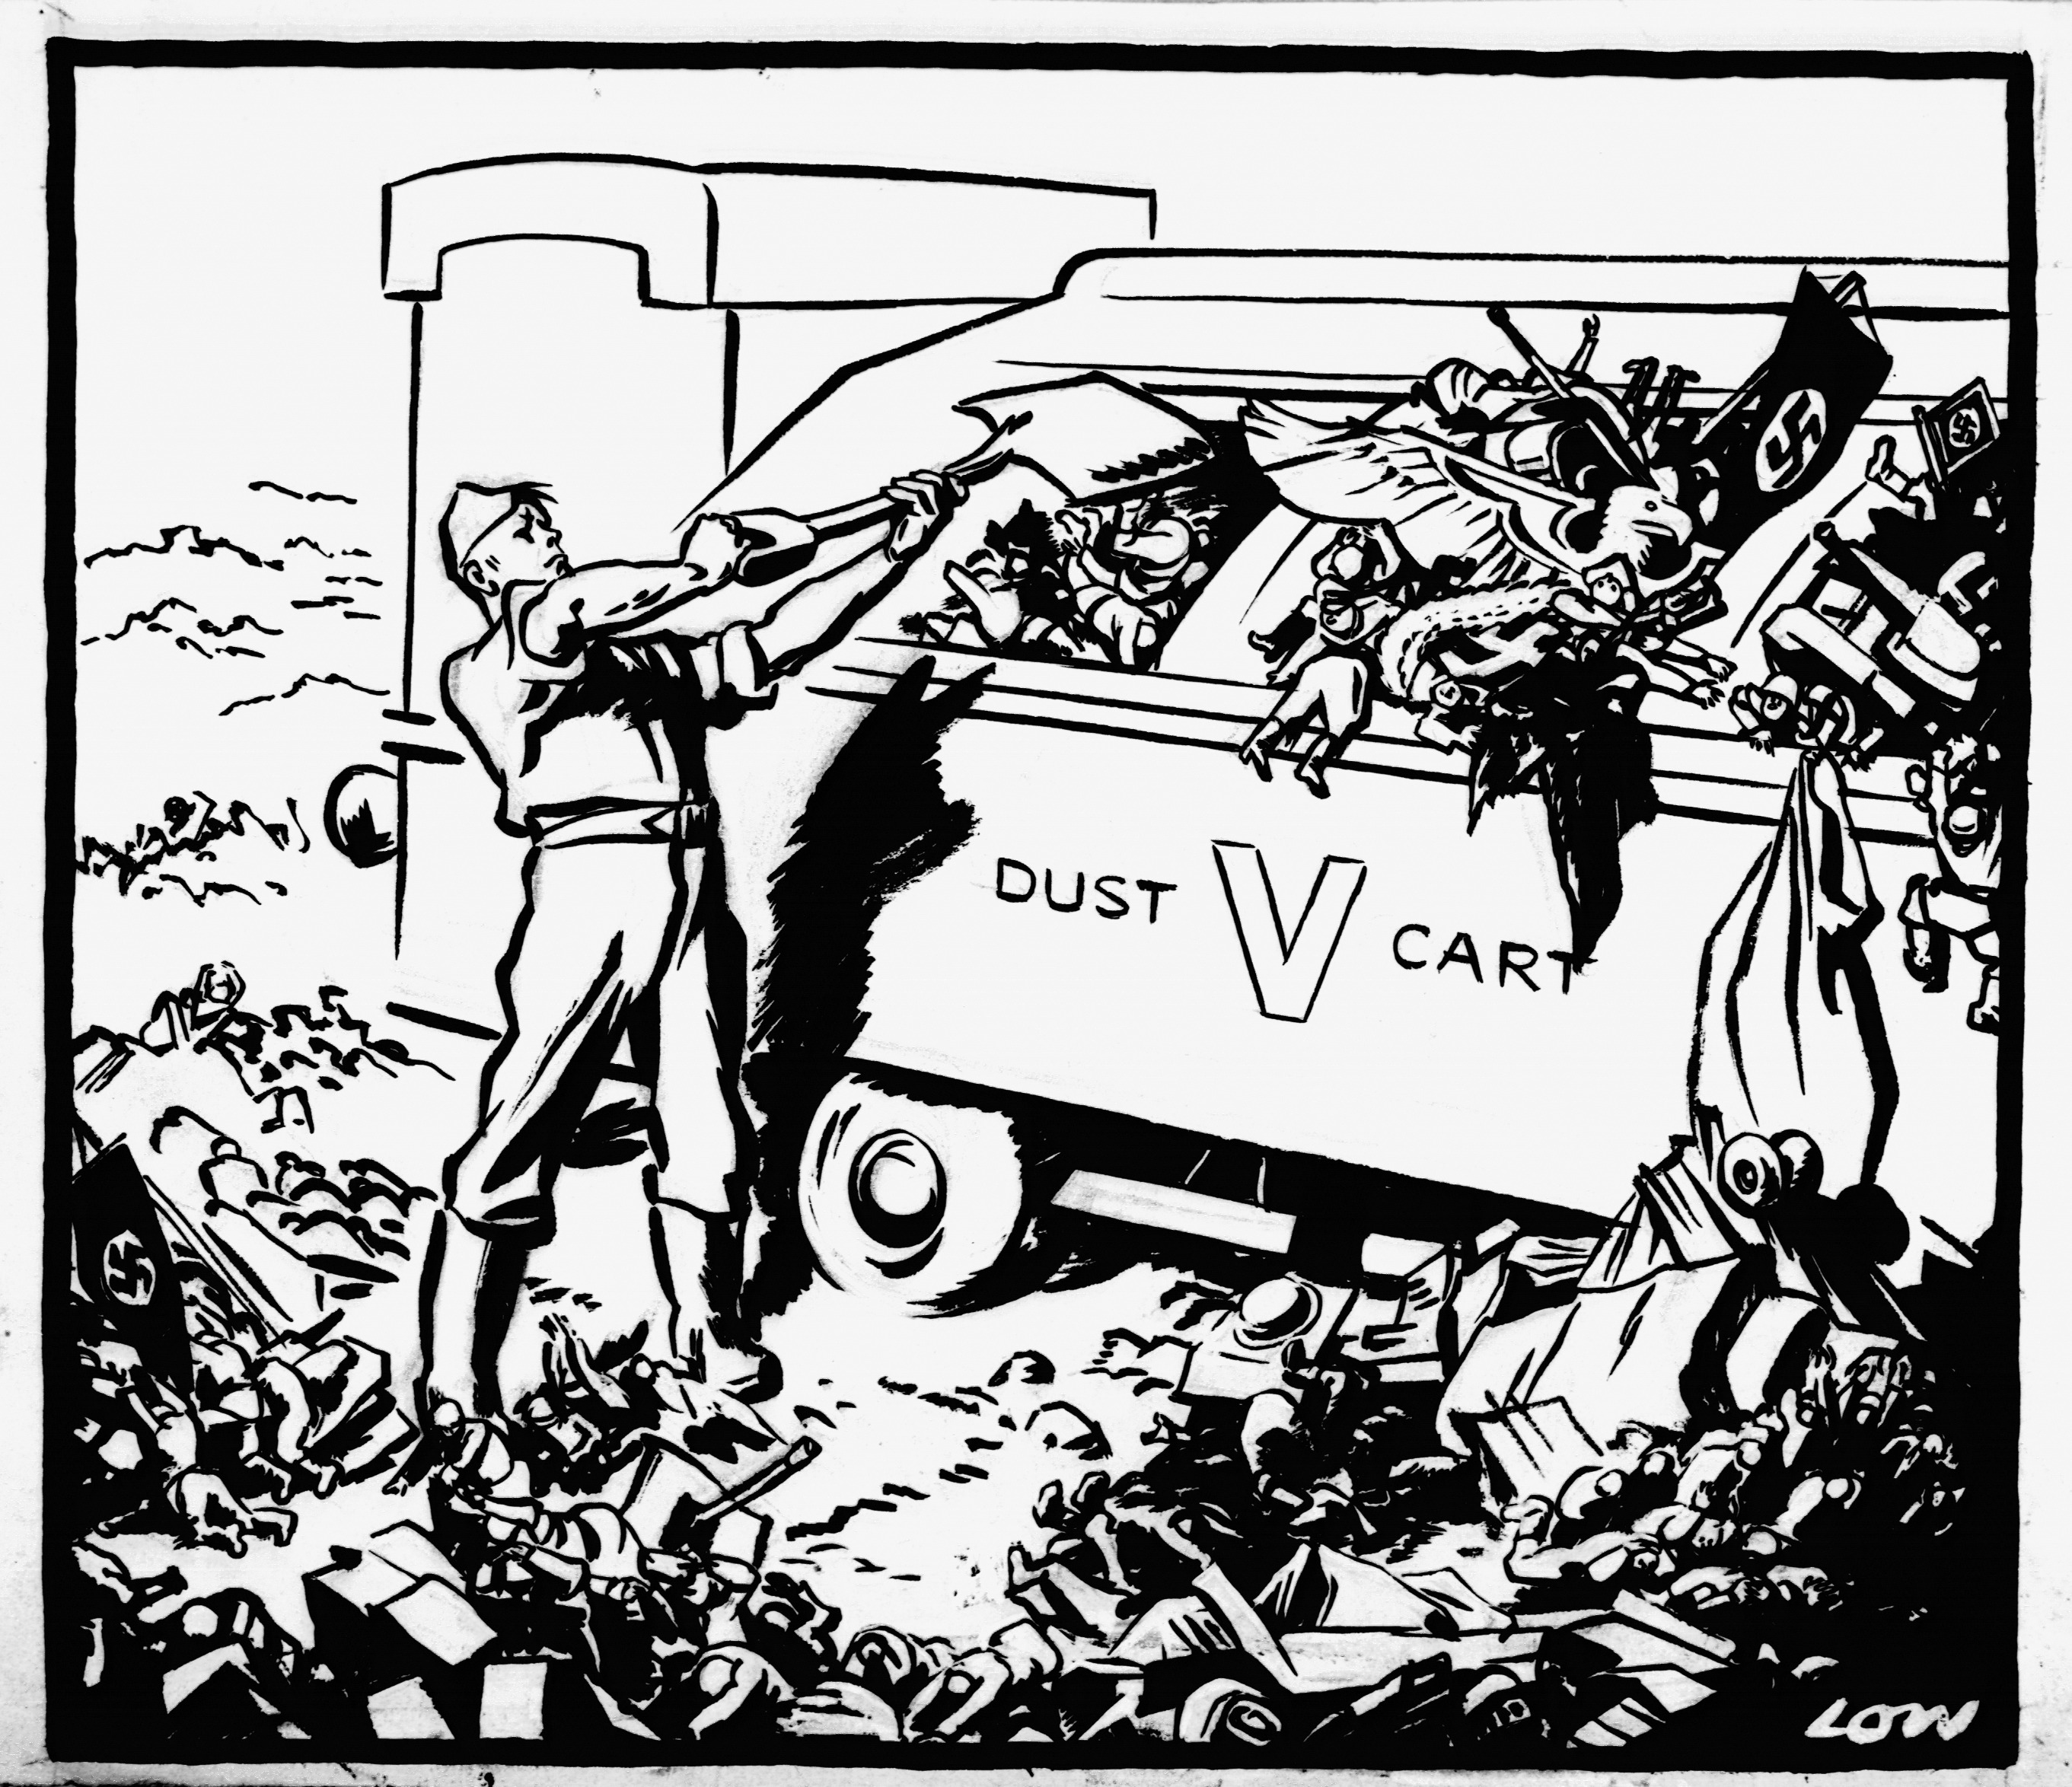 David Low, [no caption], Evening Standard, 7th May 1945 (DL2415)